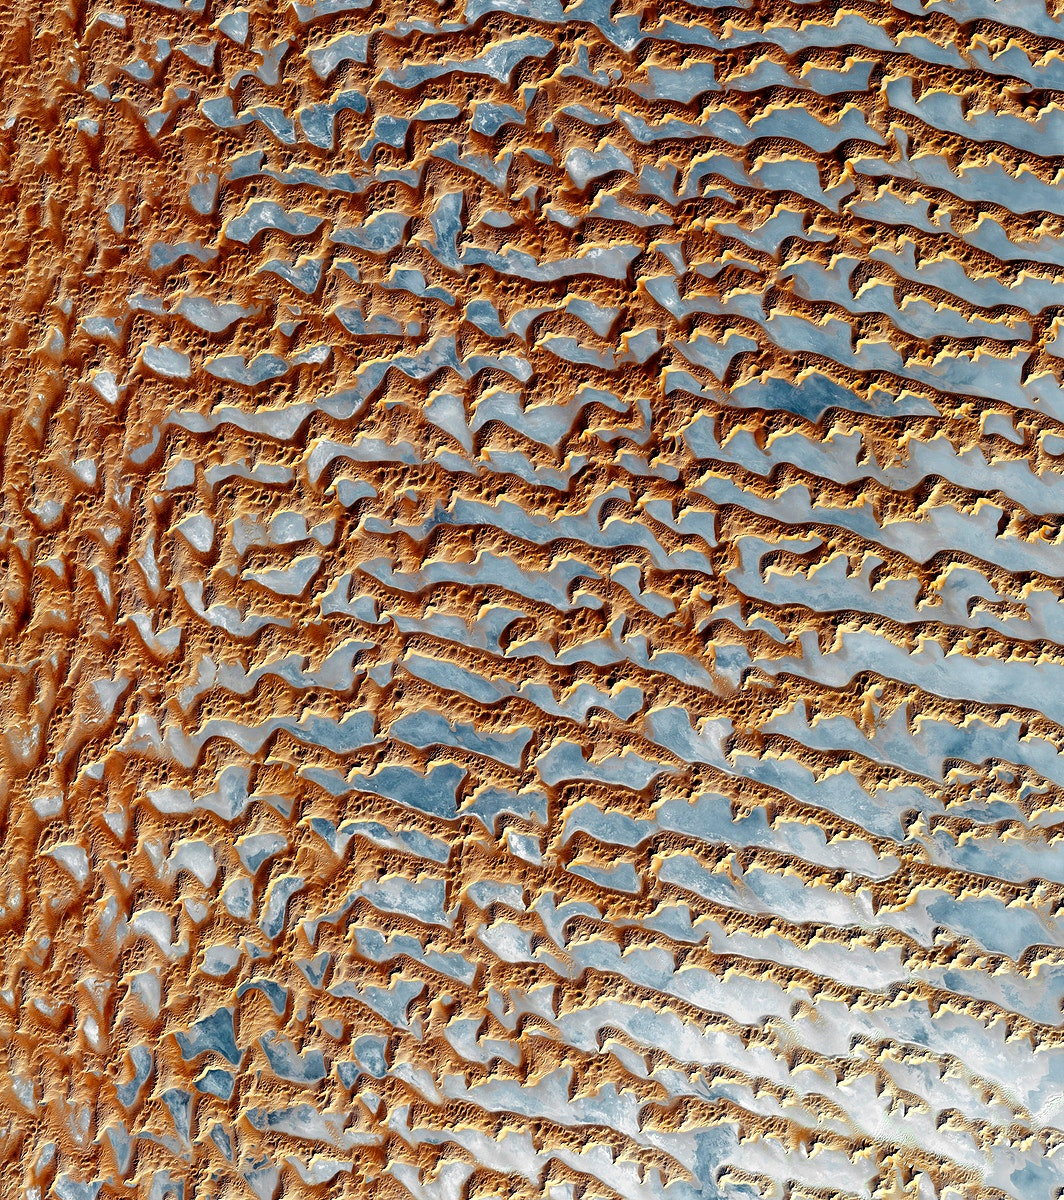 The Rub' al Khali, one of the largest sand deserts in the world, encompassing most of the southern third of the Arabian…